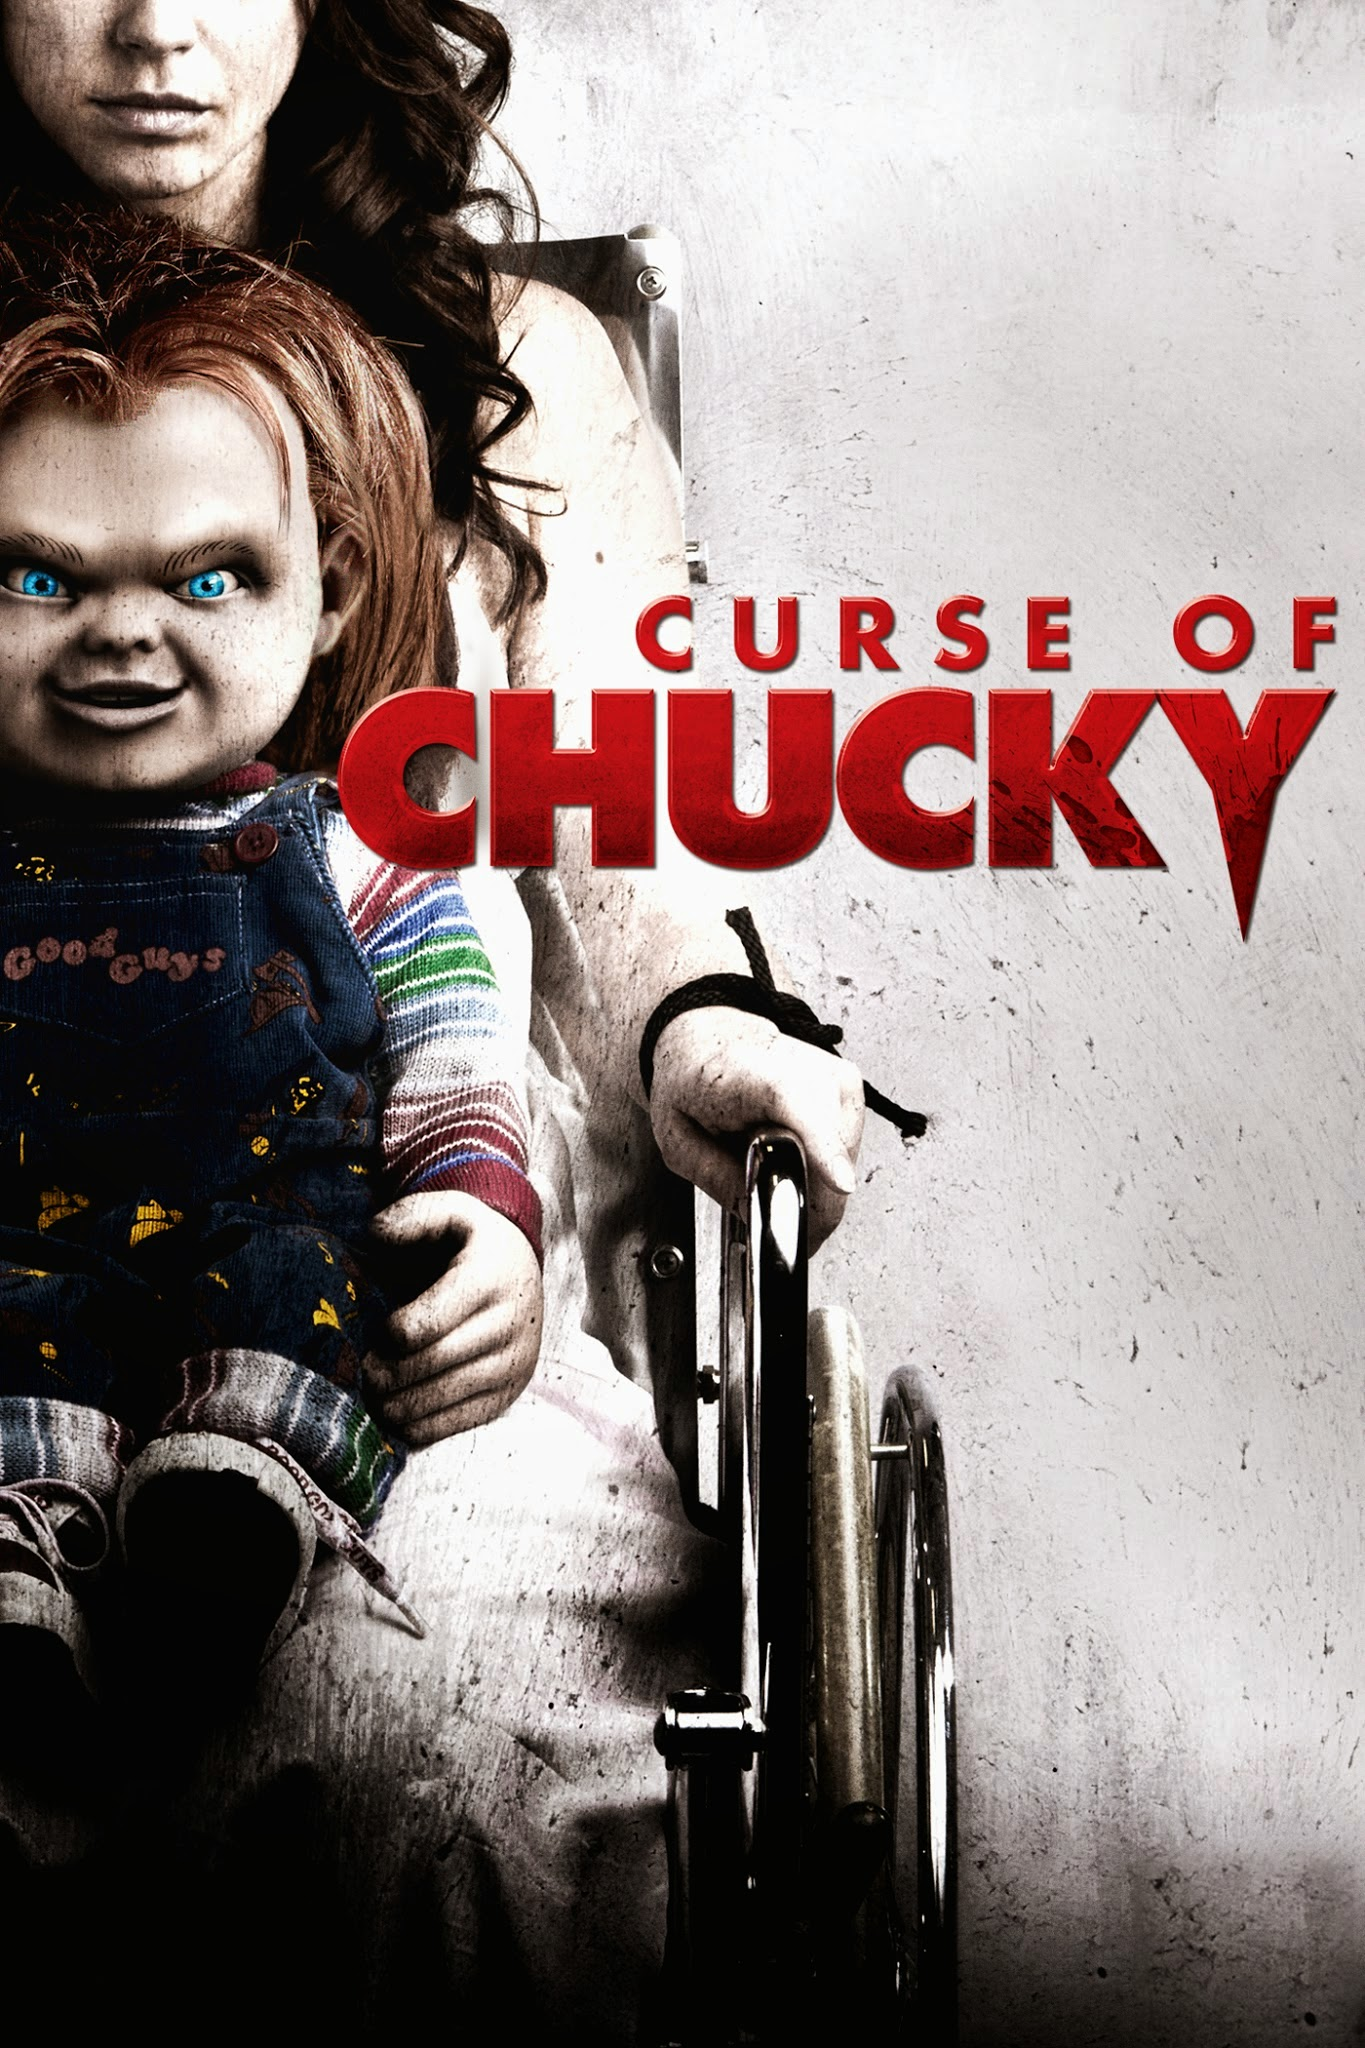 Chucky (character)